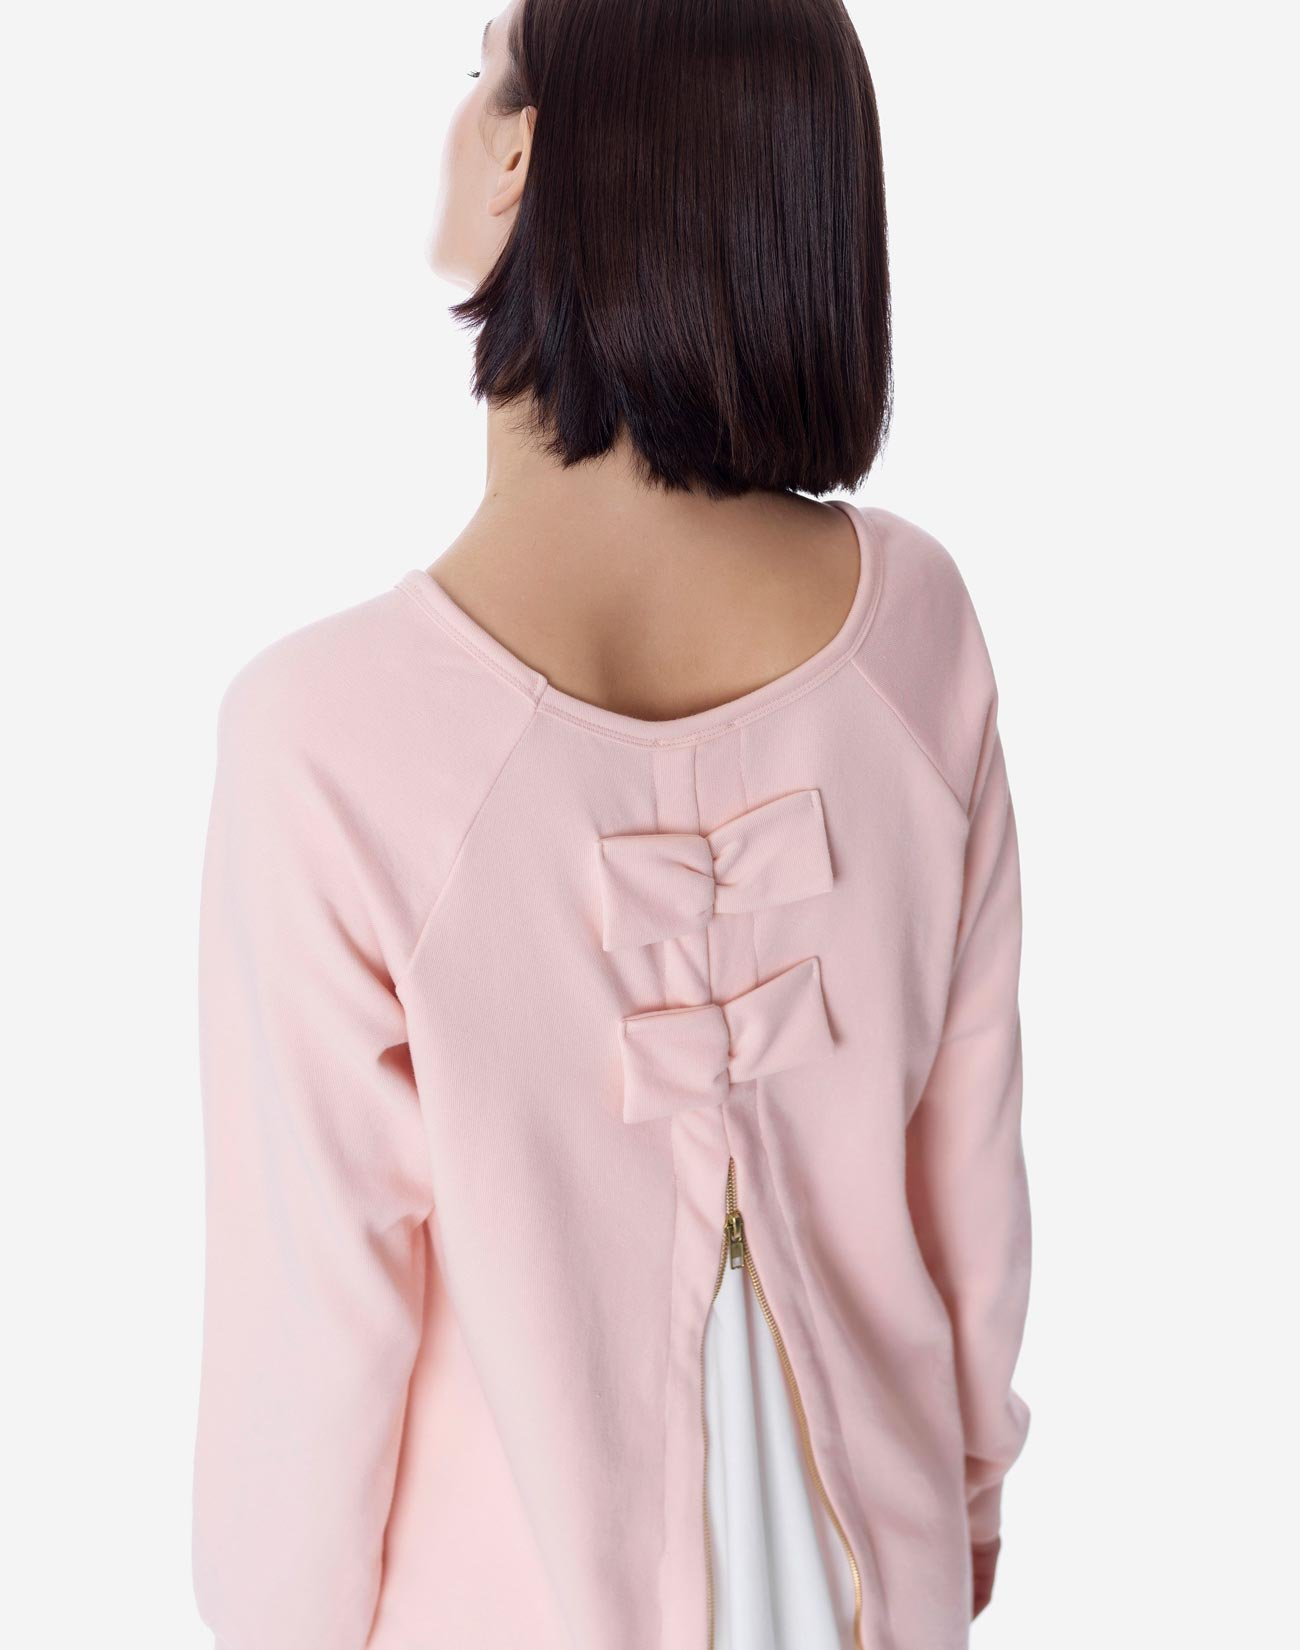 Sweatshirt with zip and bows